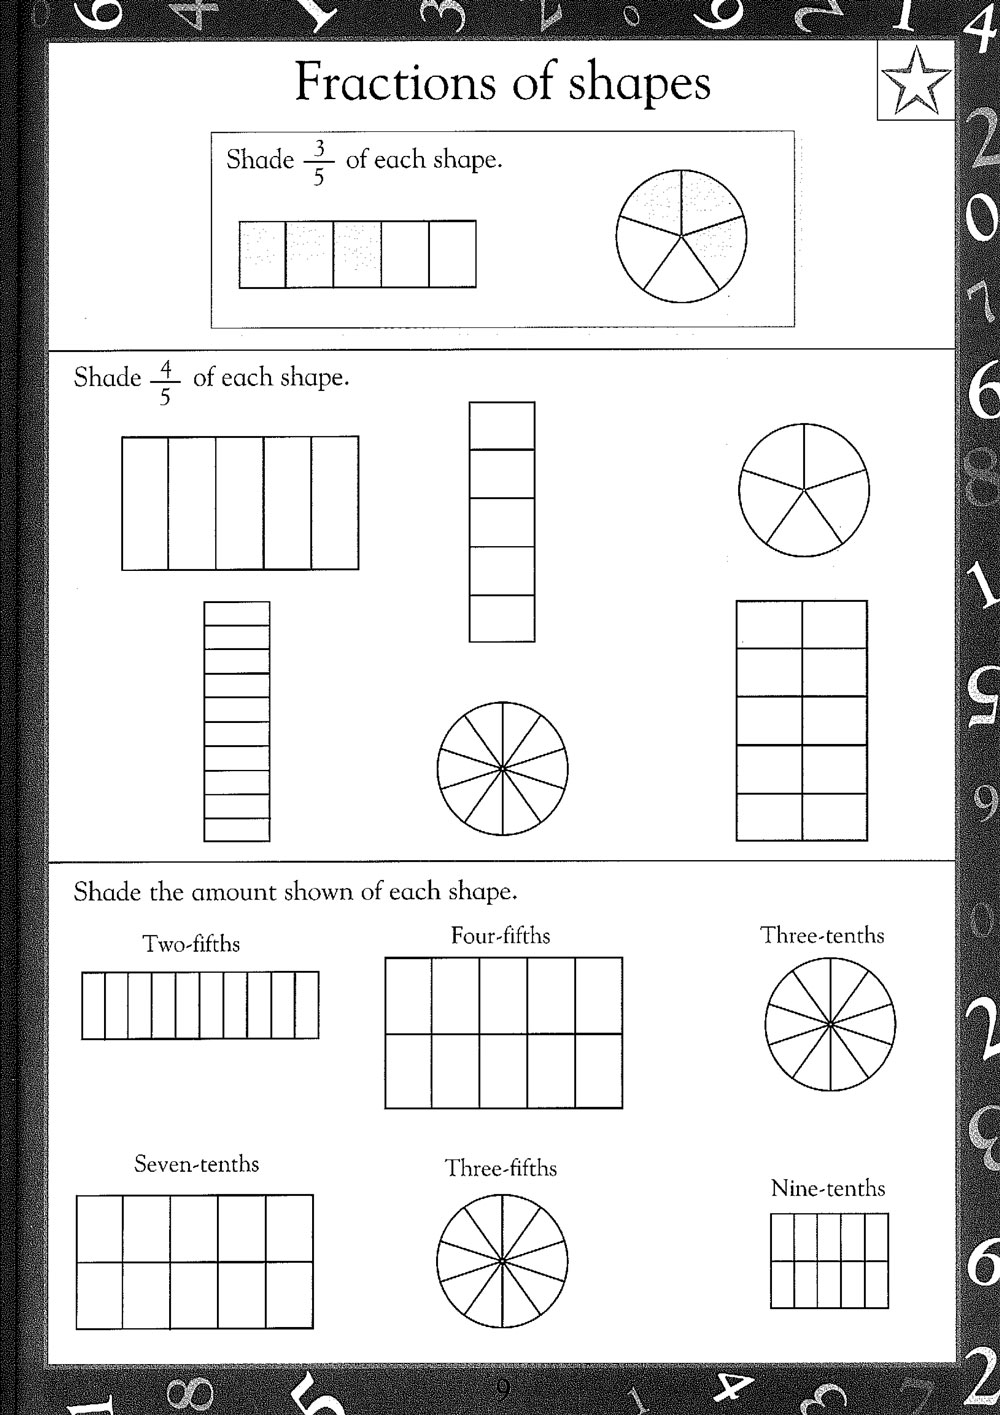 Worksheet 644447 Maths Revision Ks3 Year 8 Worksheets GCSE – Maths Revision Ks3 Year 8 Worksheets